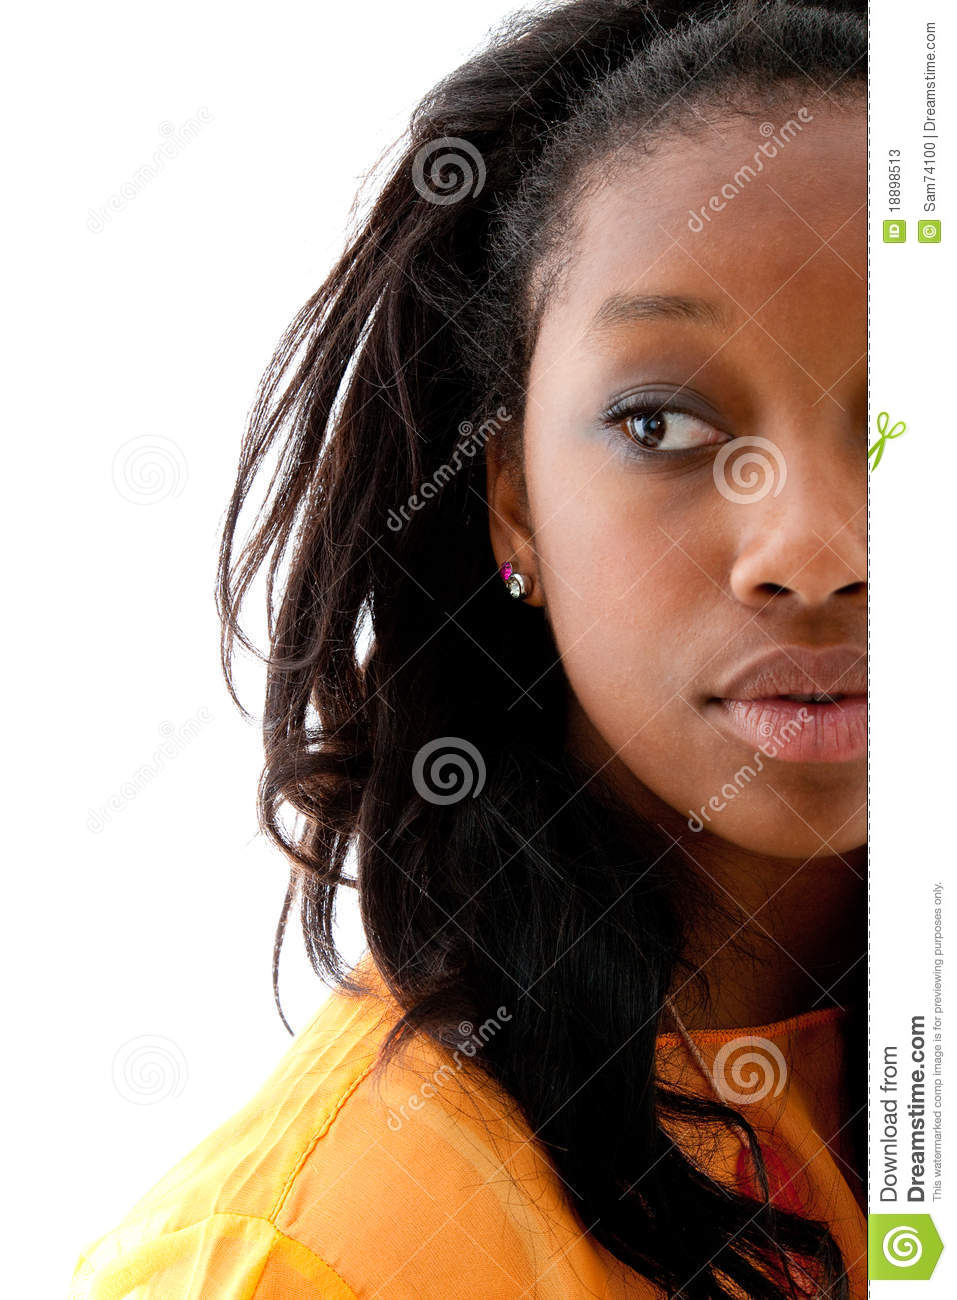 Young Cute Black Woman Stock Image Image Of Adorable 18898513